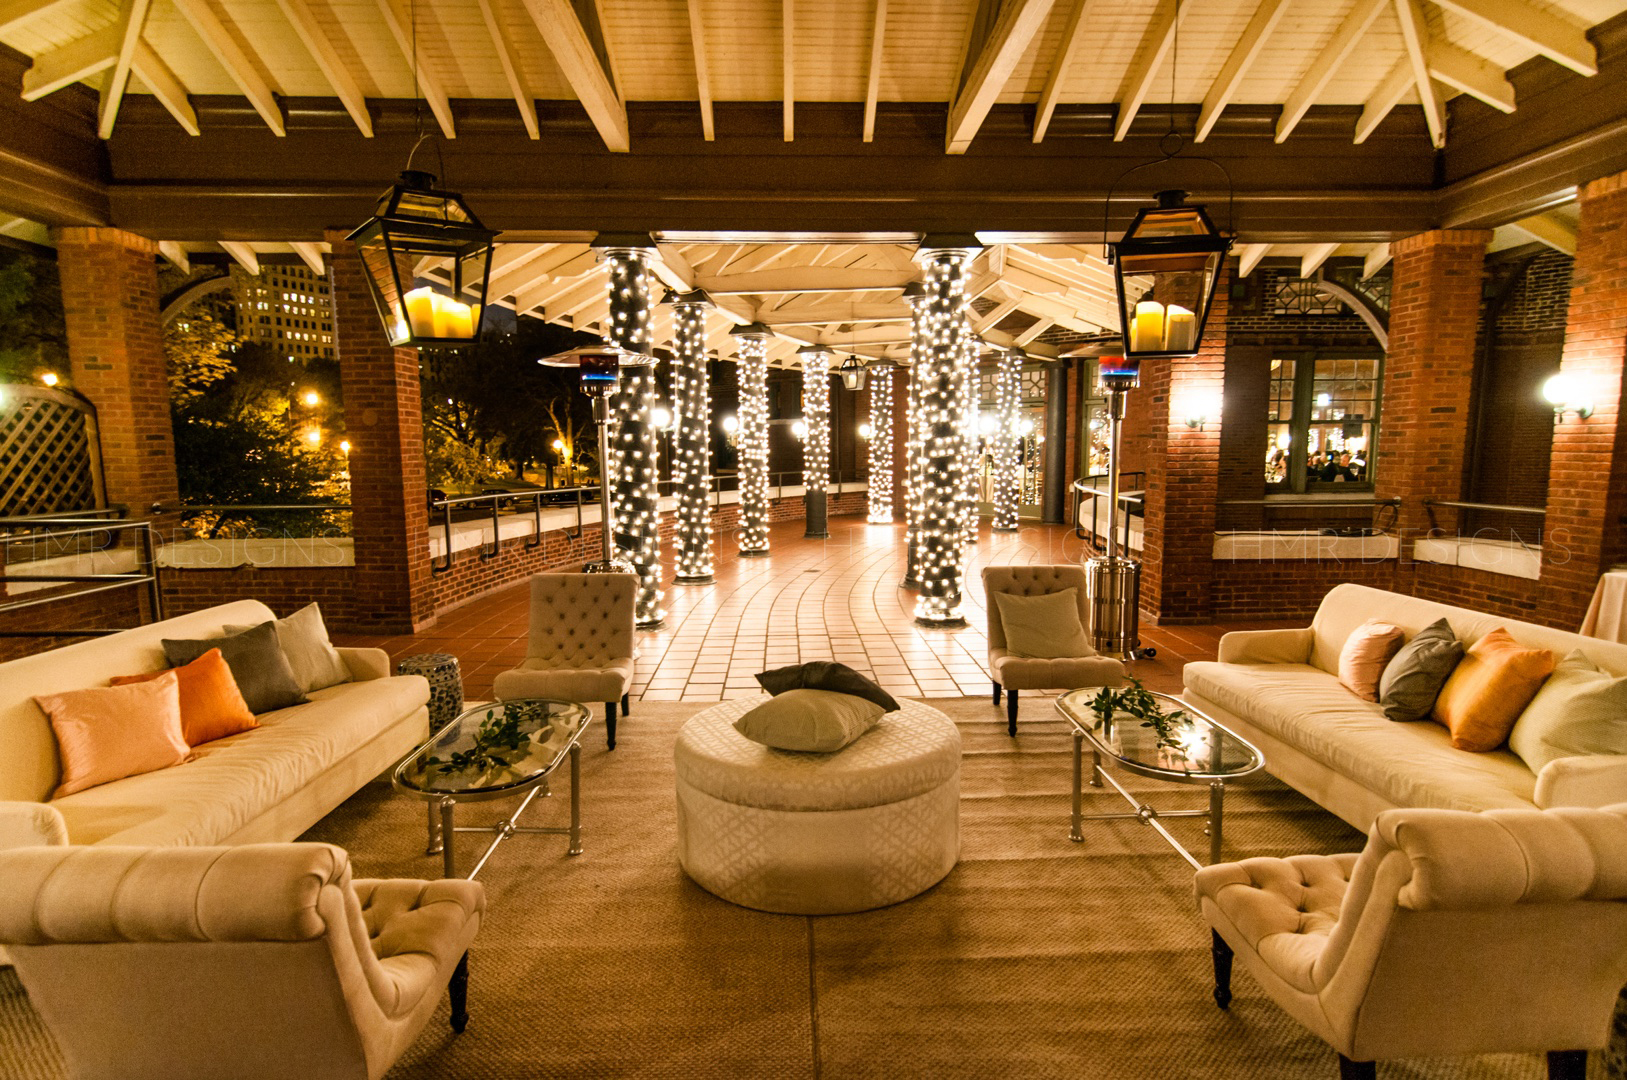 Outdoor lounge furniture at Cafe Brauer for a spring Chicago wedding.